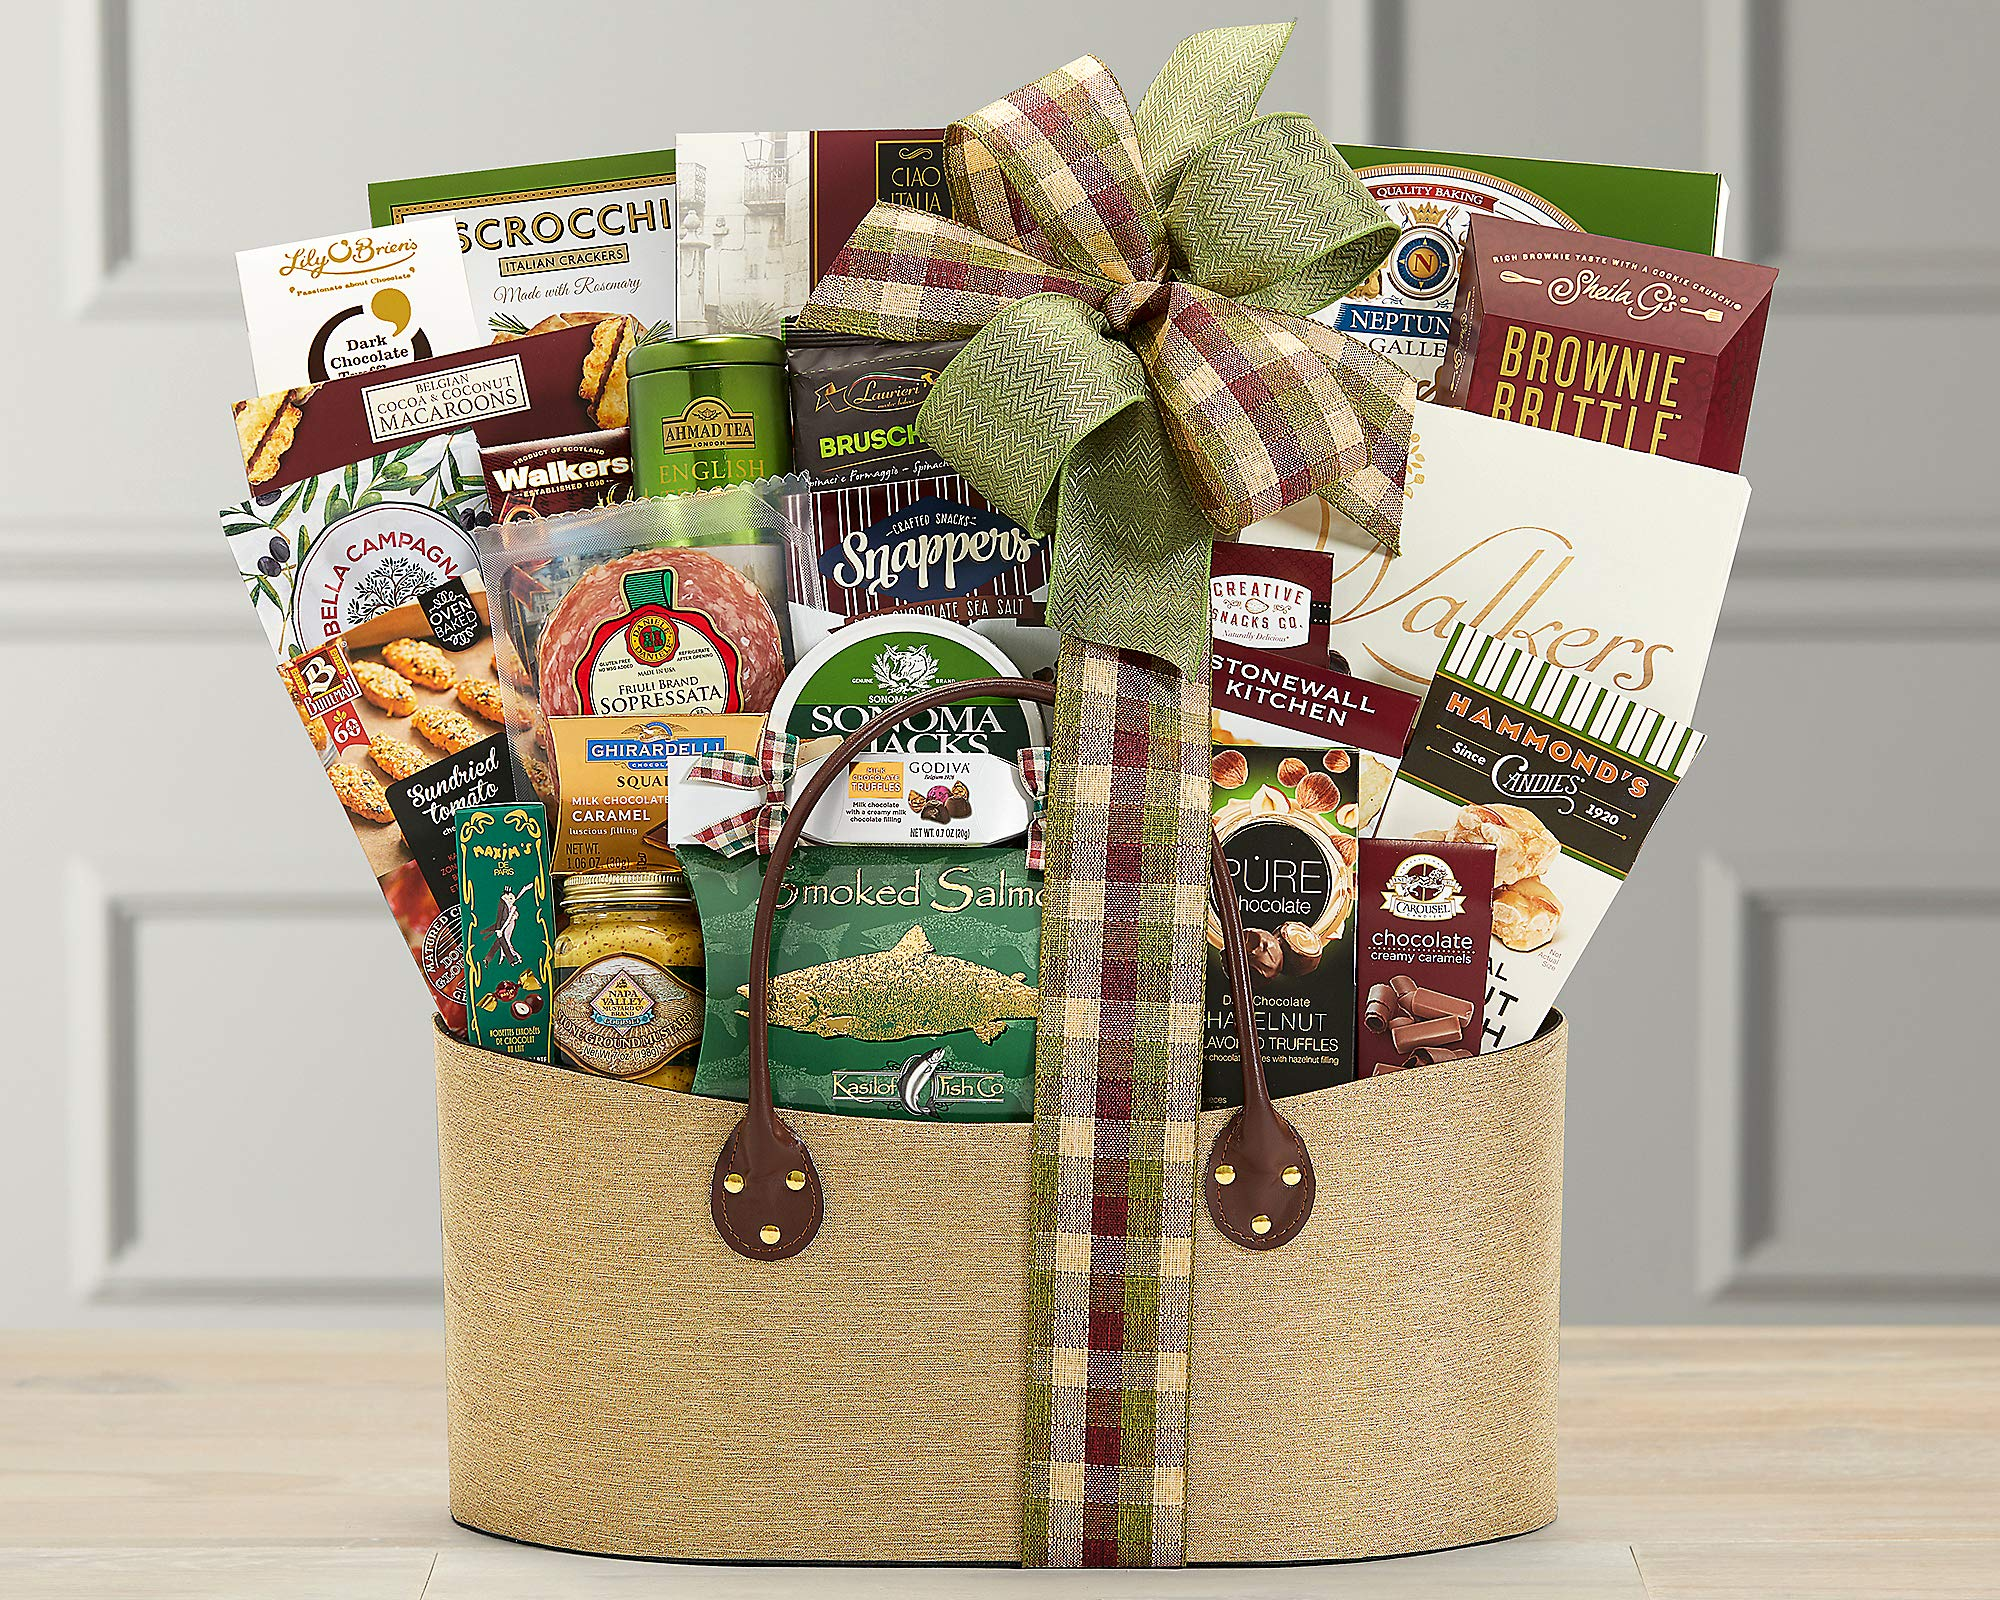 Wine Country Gift Baskets Gourmet Choice Gift Basket. Perfect For Any & All Occasions. Retirement, Birthday, Celebration, Sympathy & Appreciation. Featuring An Extravaganza of Award Winning Brands by Wine Country Gift Baskets (Image #2)